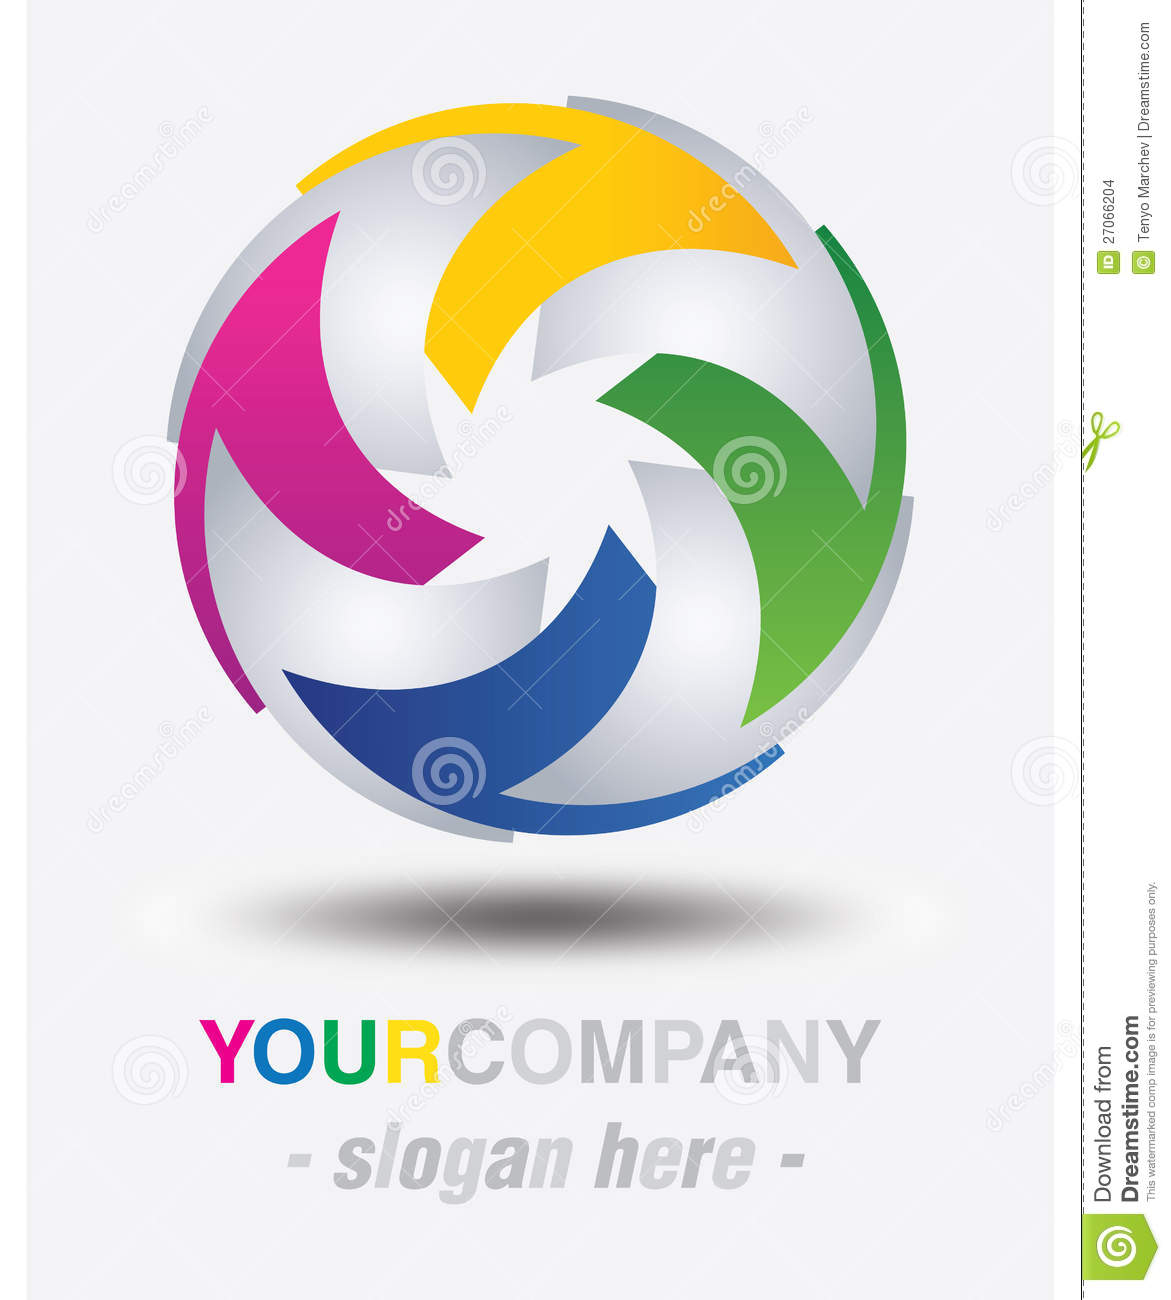 Modern Logo Design Stock Images - Image: 27066204